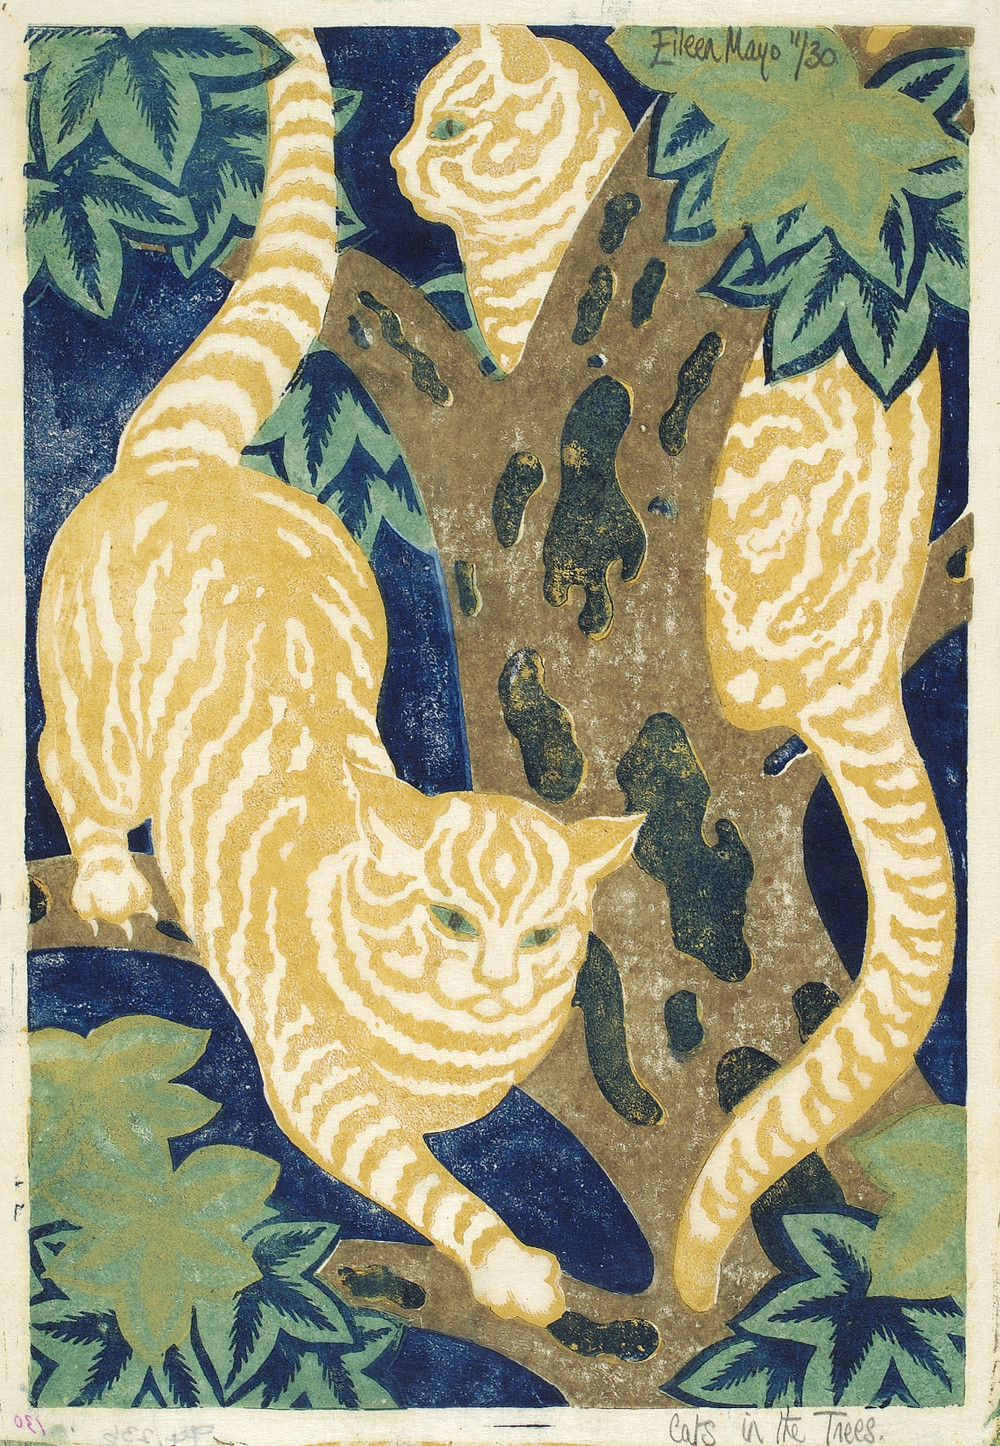 Cats in the Trees by Eileen Mayo